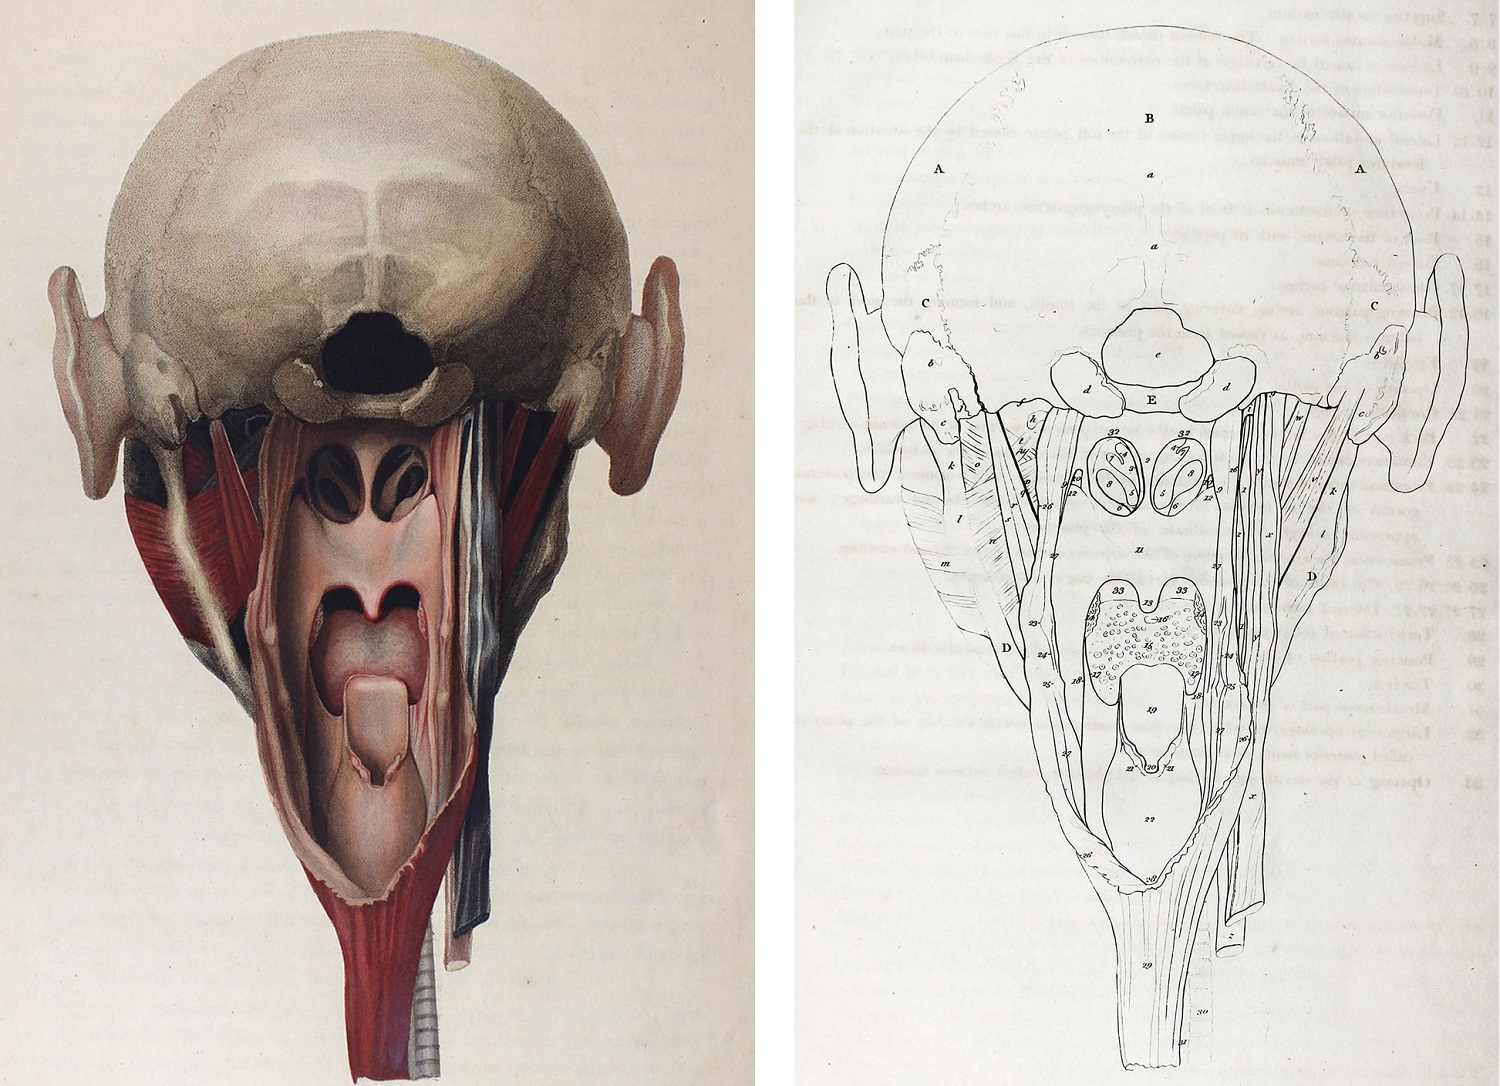 Colour illustration of anatomy of  anatomy of the head as seen from behind looking into the cavity of the mouth.